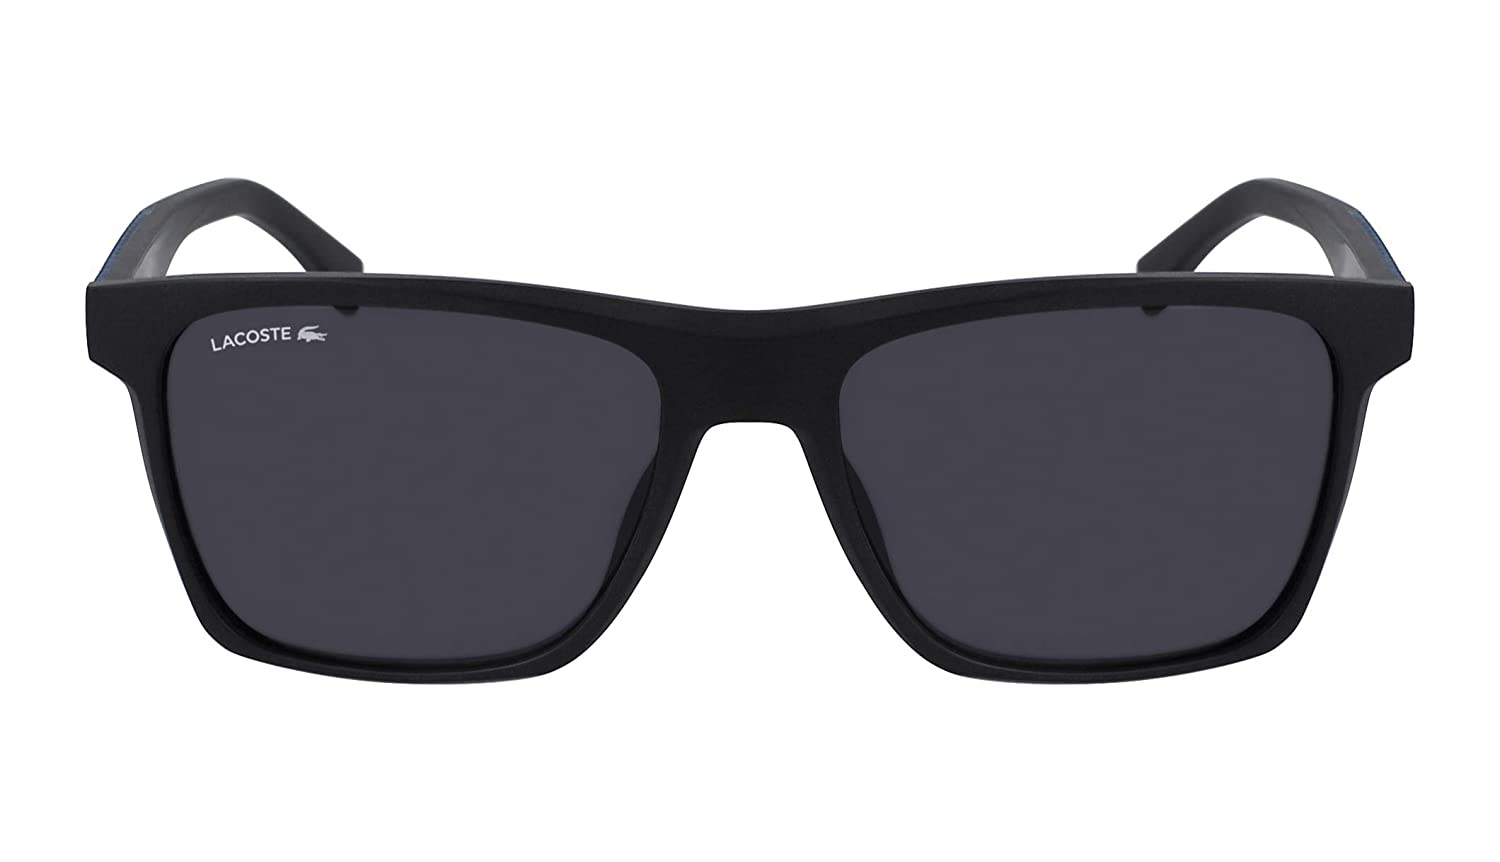 Lacoste Mens L900s L900S-001 Rectangular Sunglasses, Black Matte, 56.02 mm